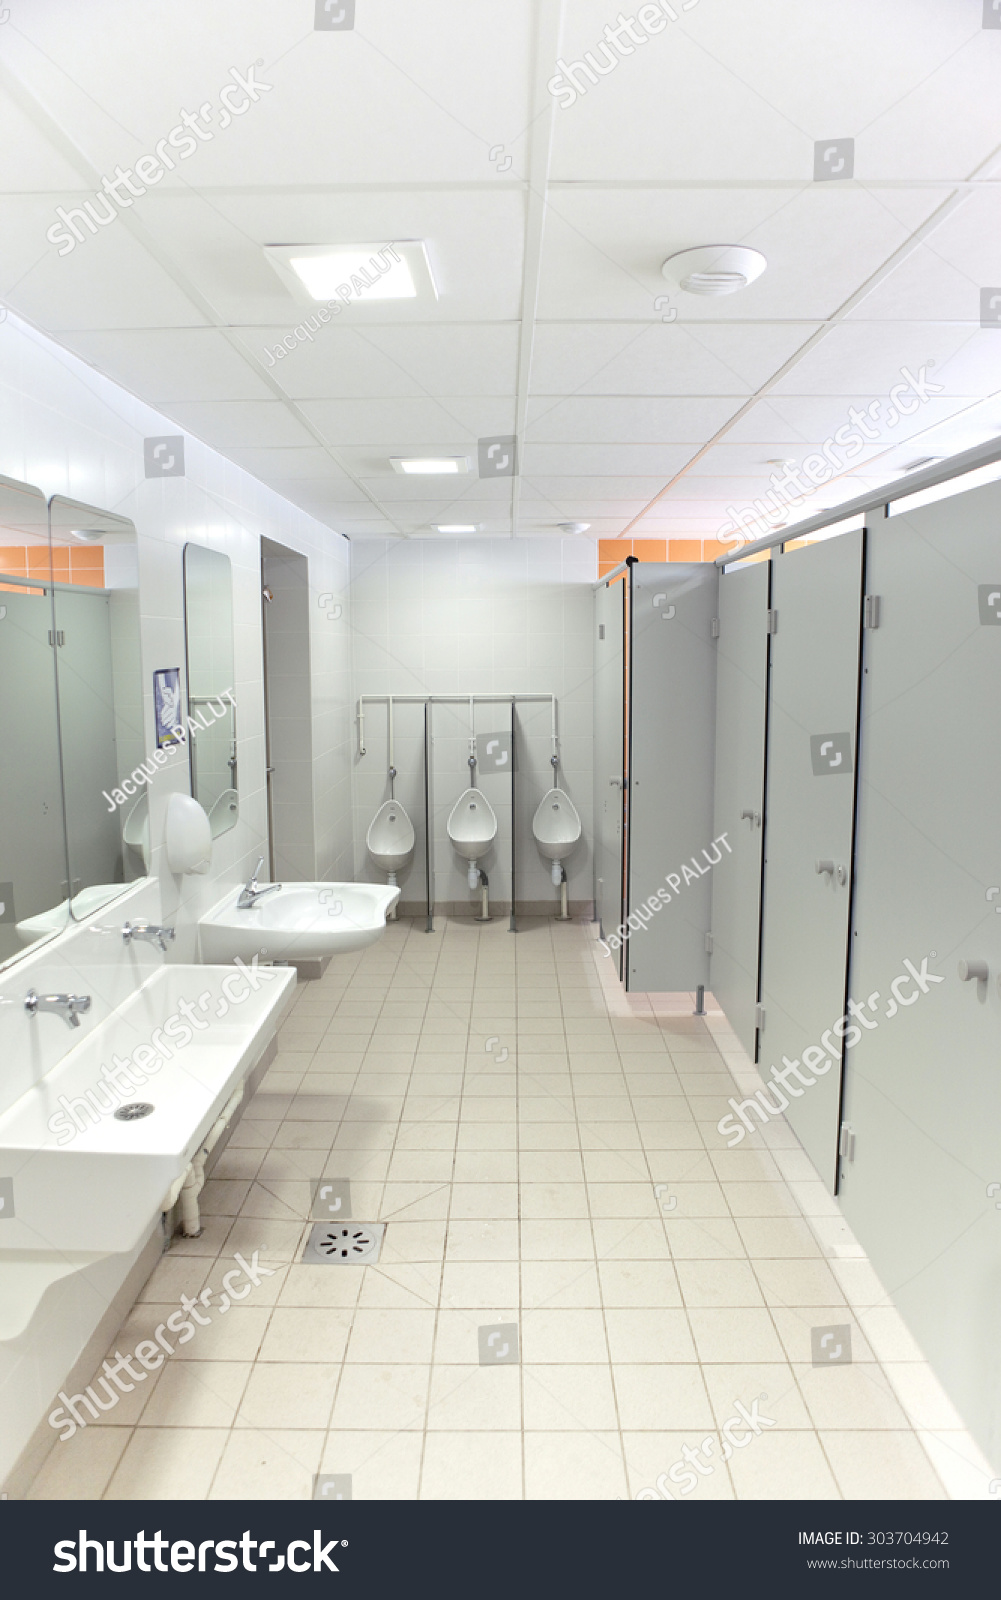 Clean Washroom Toilets School Stock Photo (100% Legal Protection ...